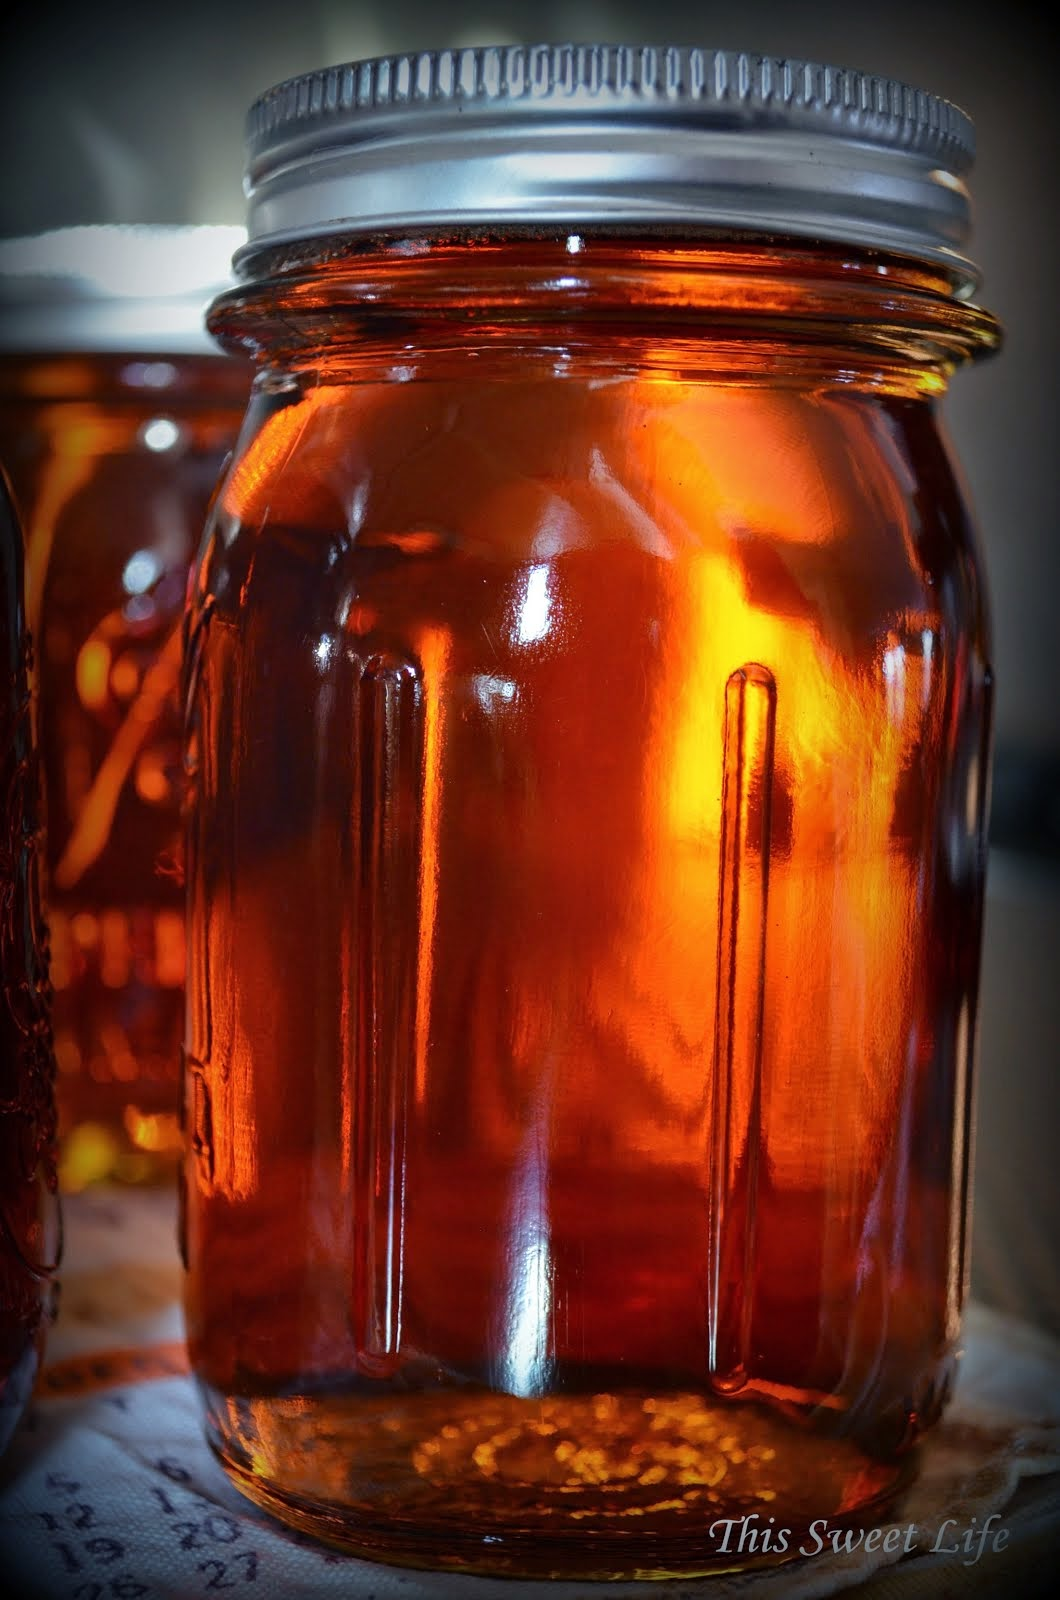 Sweet Run Farm's Pure Maple Syrup